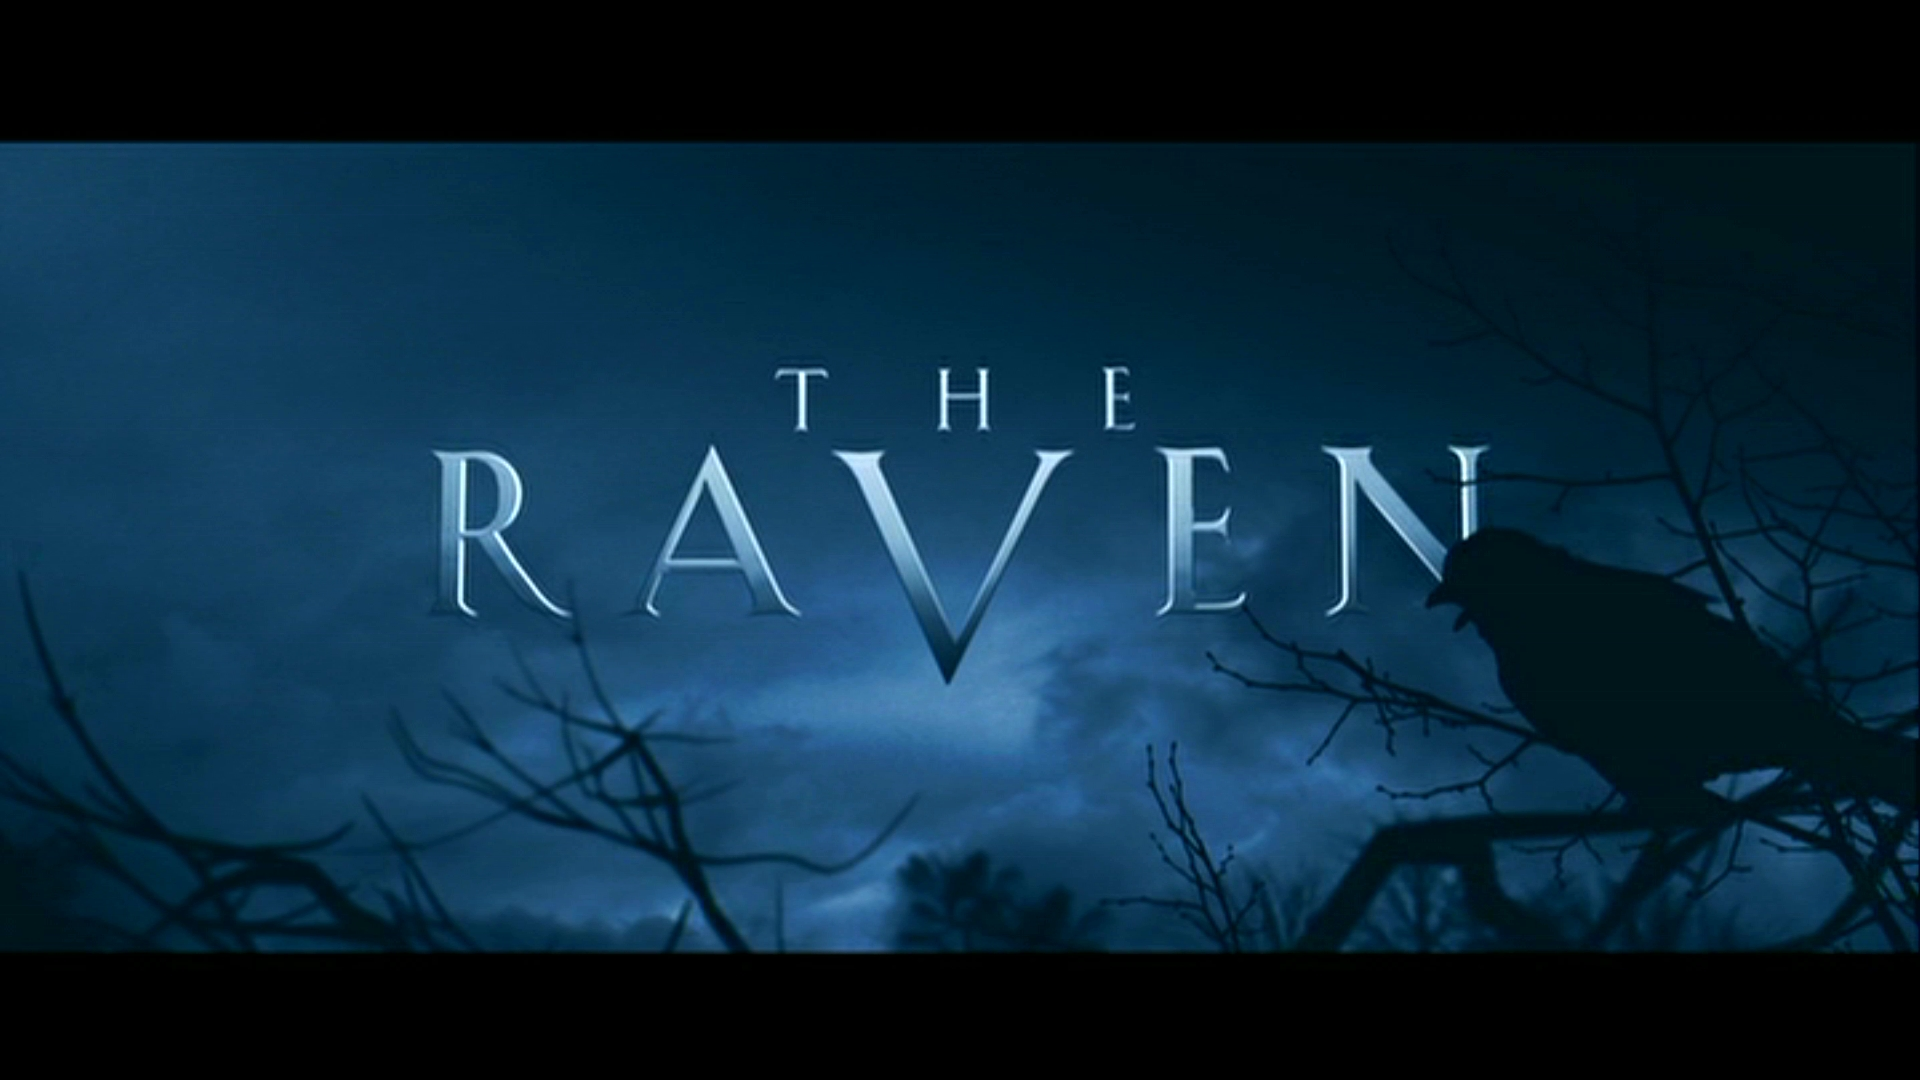 The Raven Computer Wallpapers Desktop Backgrounds 1920x1080 ID 1920x1080